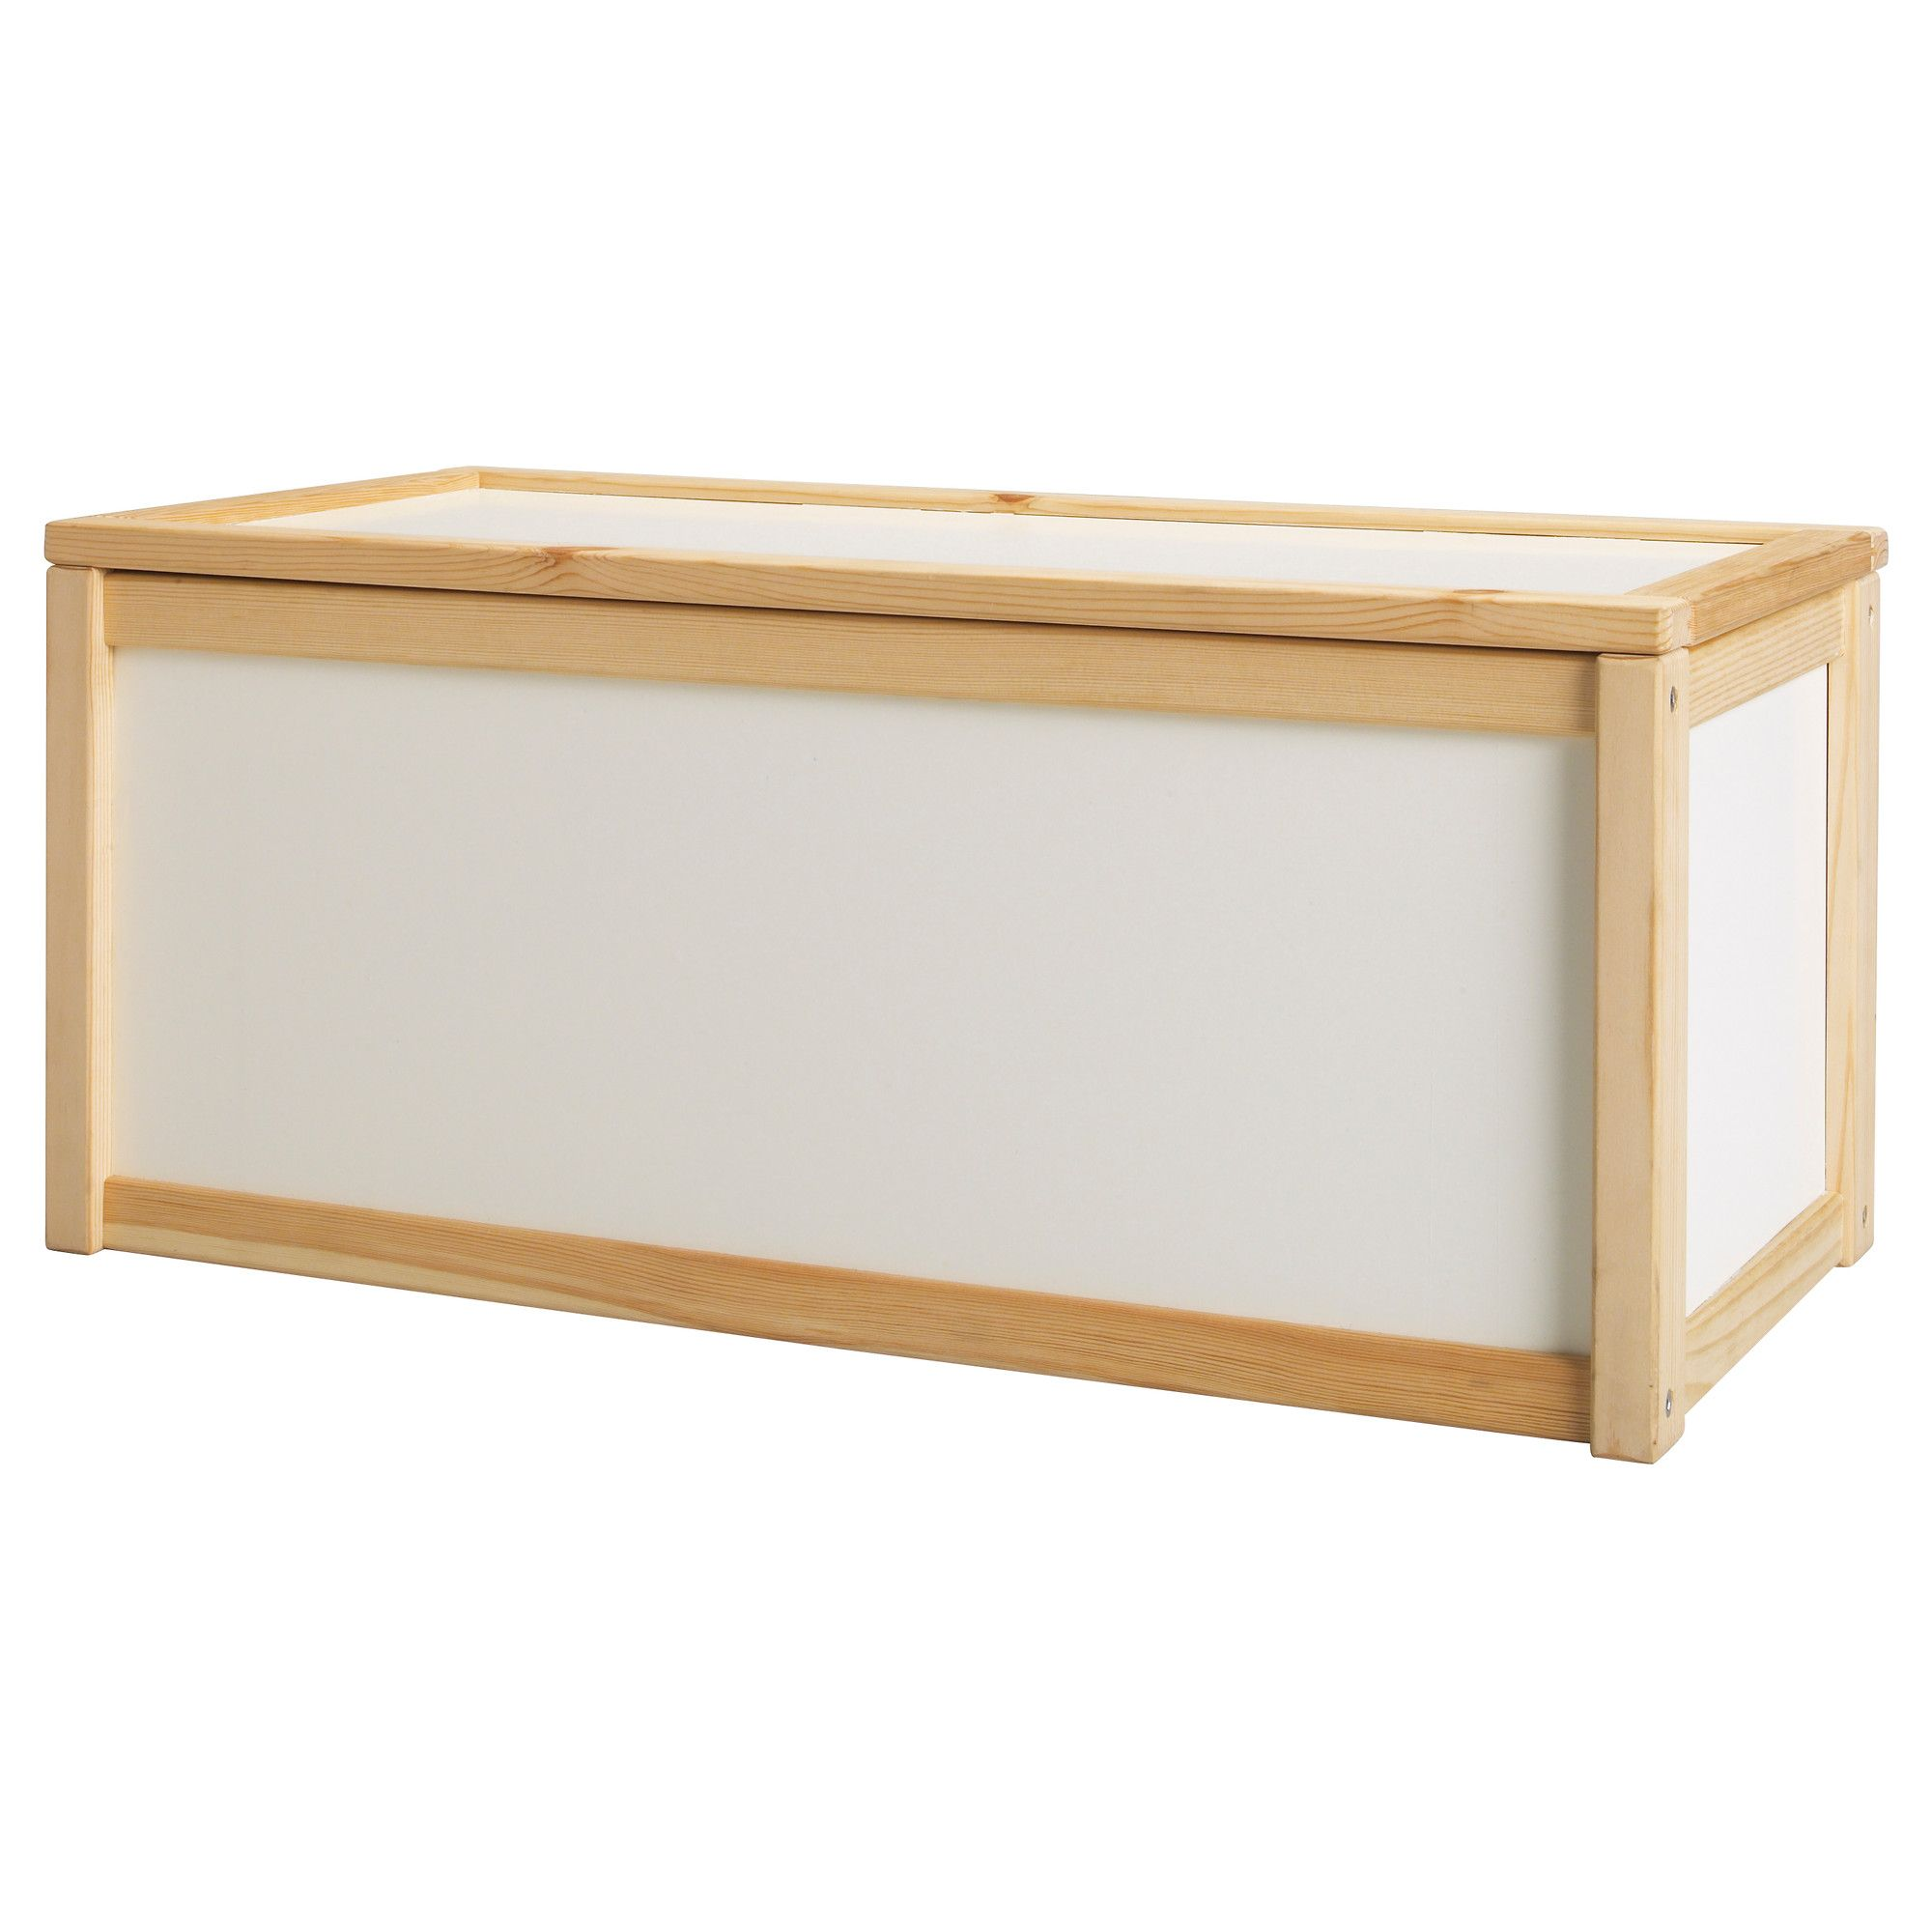 Apa storage box ikea i wonder if this would be strong Storage bench ikea